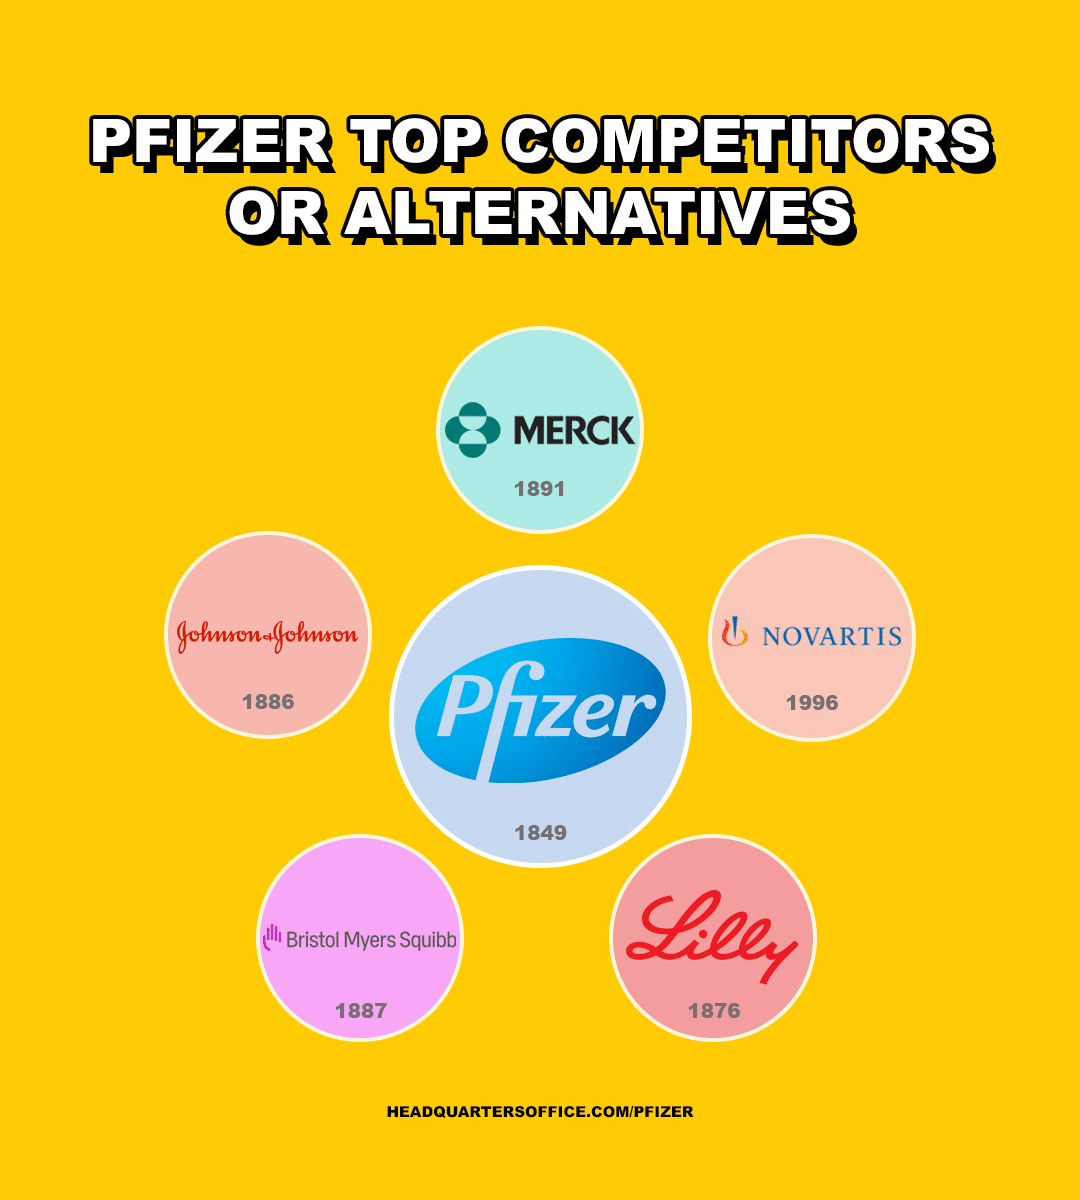 Pfizer top Competitors or Alternatives